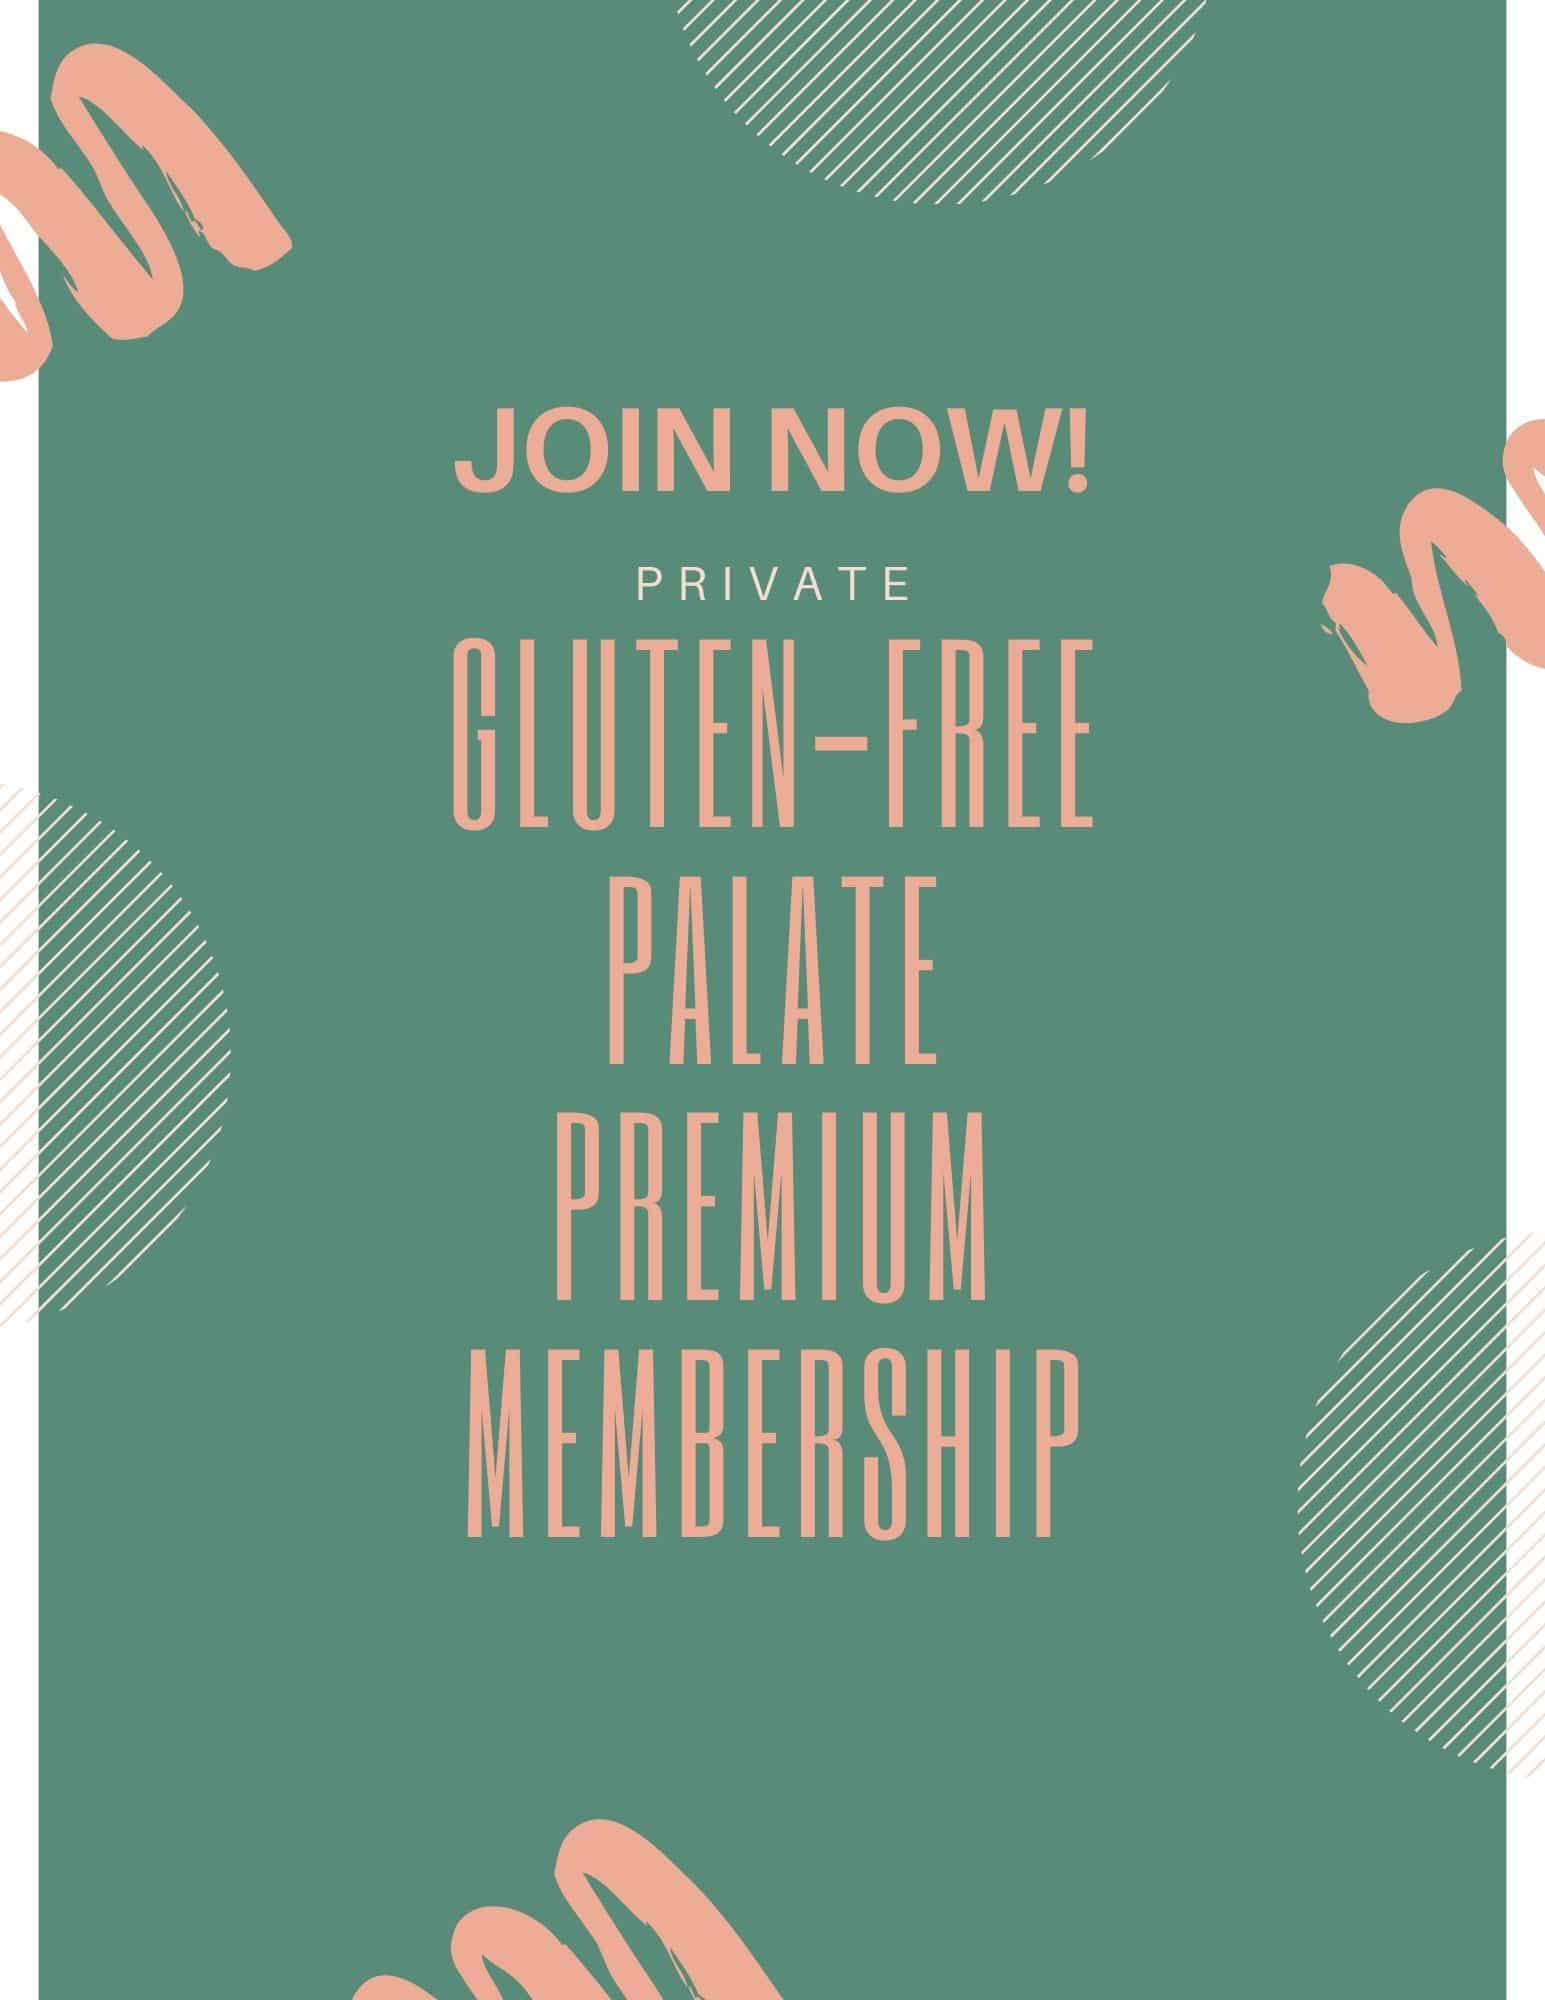 Button to join gluten free palate premium membership program